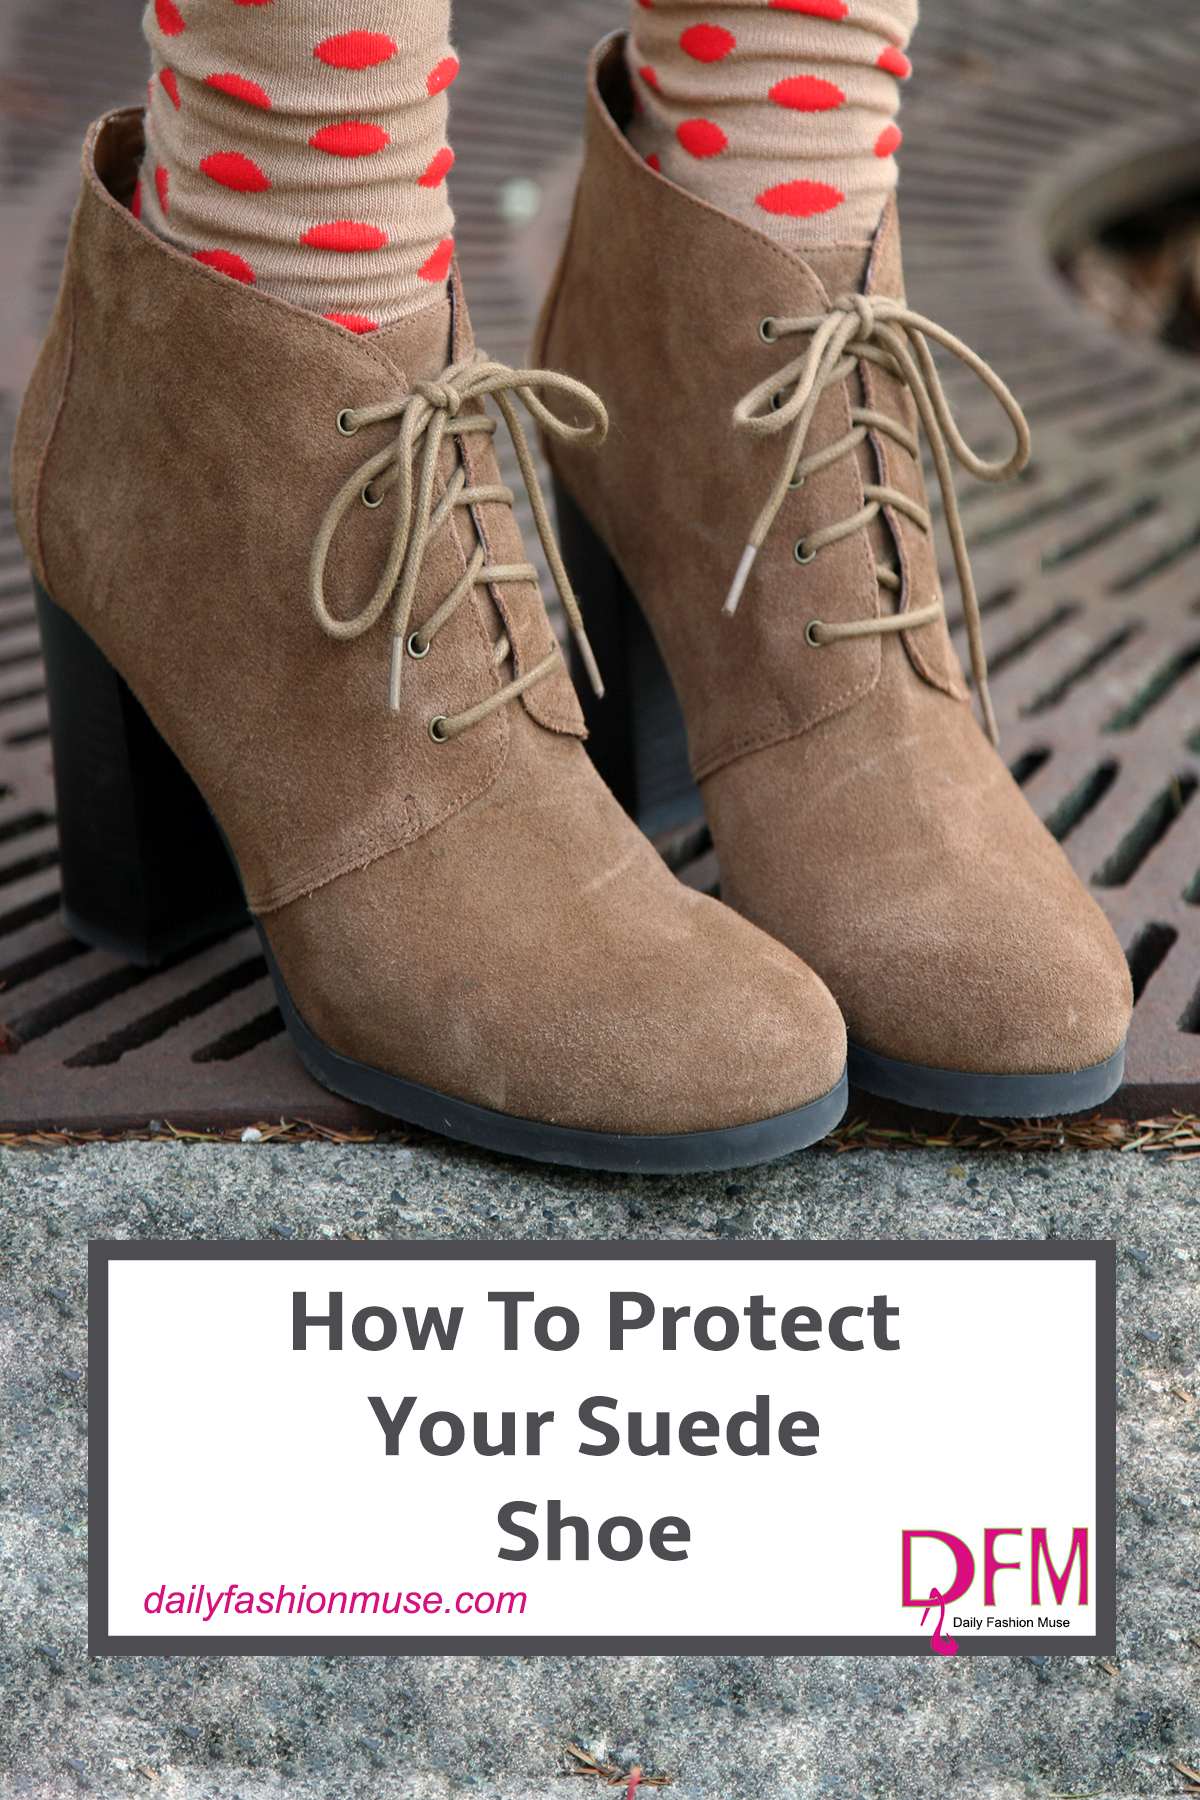 You just scored a deal on a sweet pair of suede shoes, but before your step outside in them, you best read these seven tips to protect suede shoes.